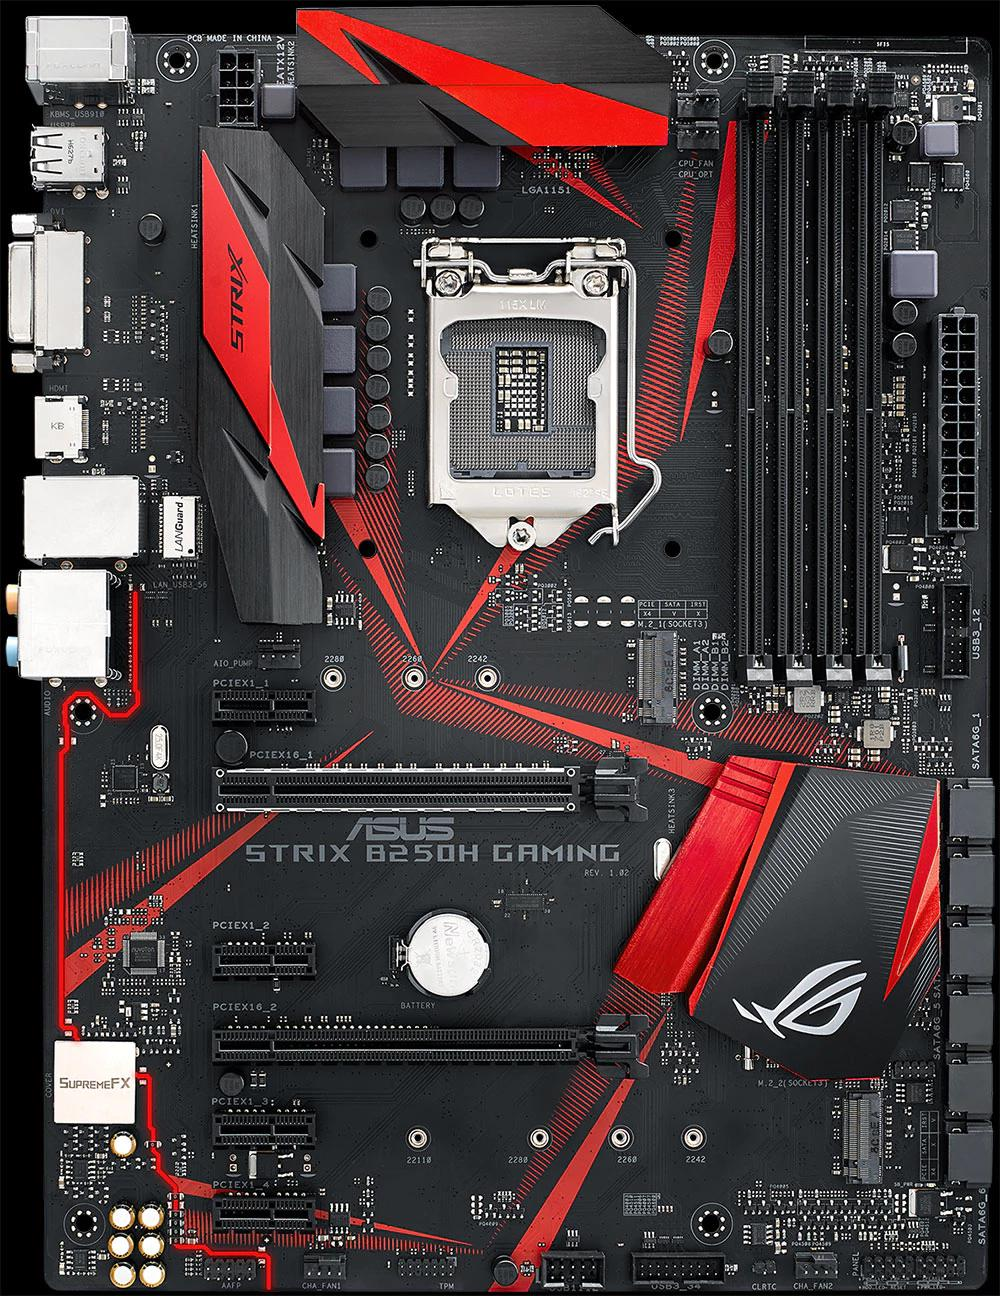 ASUS Republic of Gamers Announces Strix B250G Gaming and Strix B250H